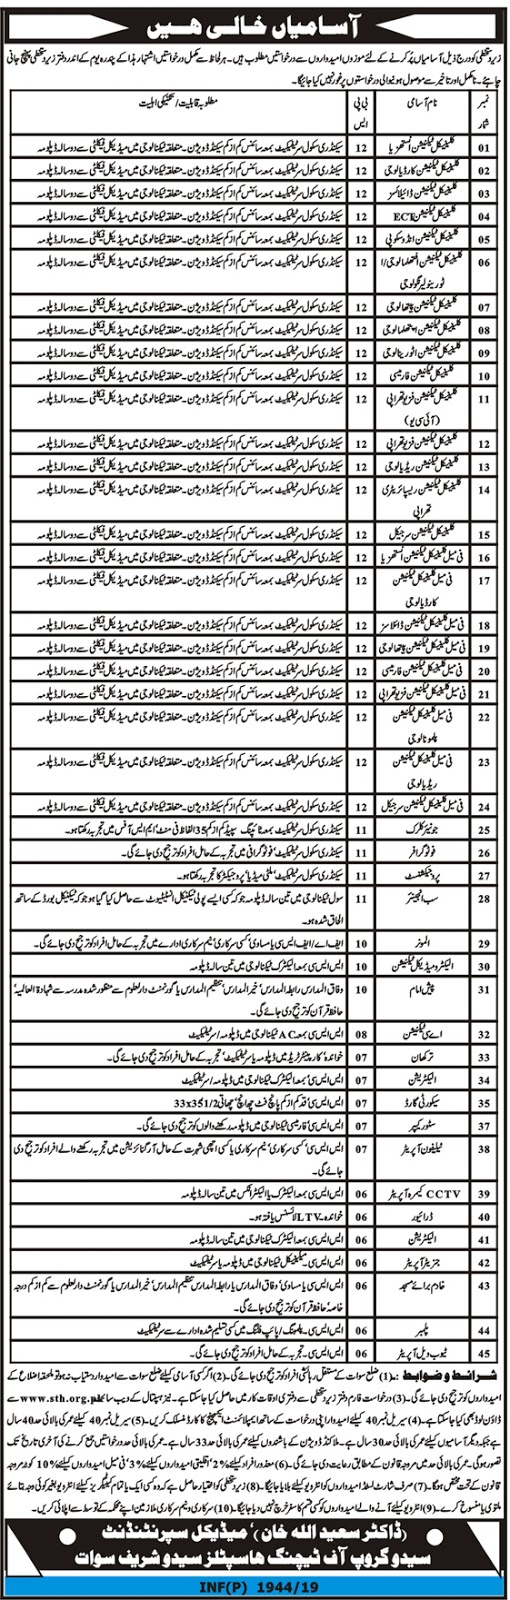 District Headquarters Hospital Saidu Sharif Swat Jobs